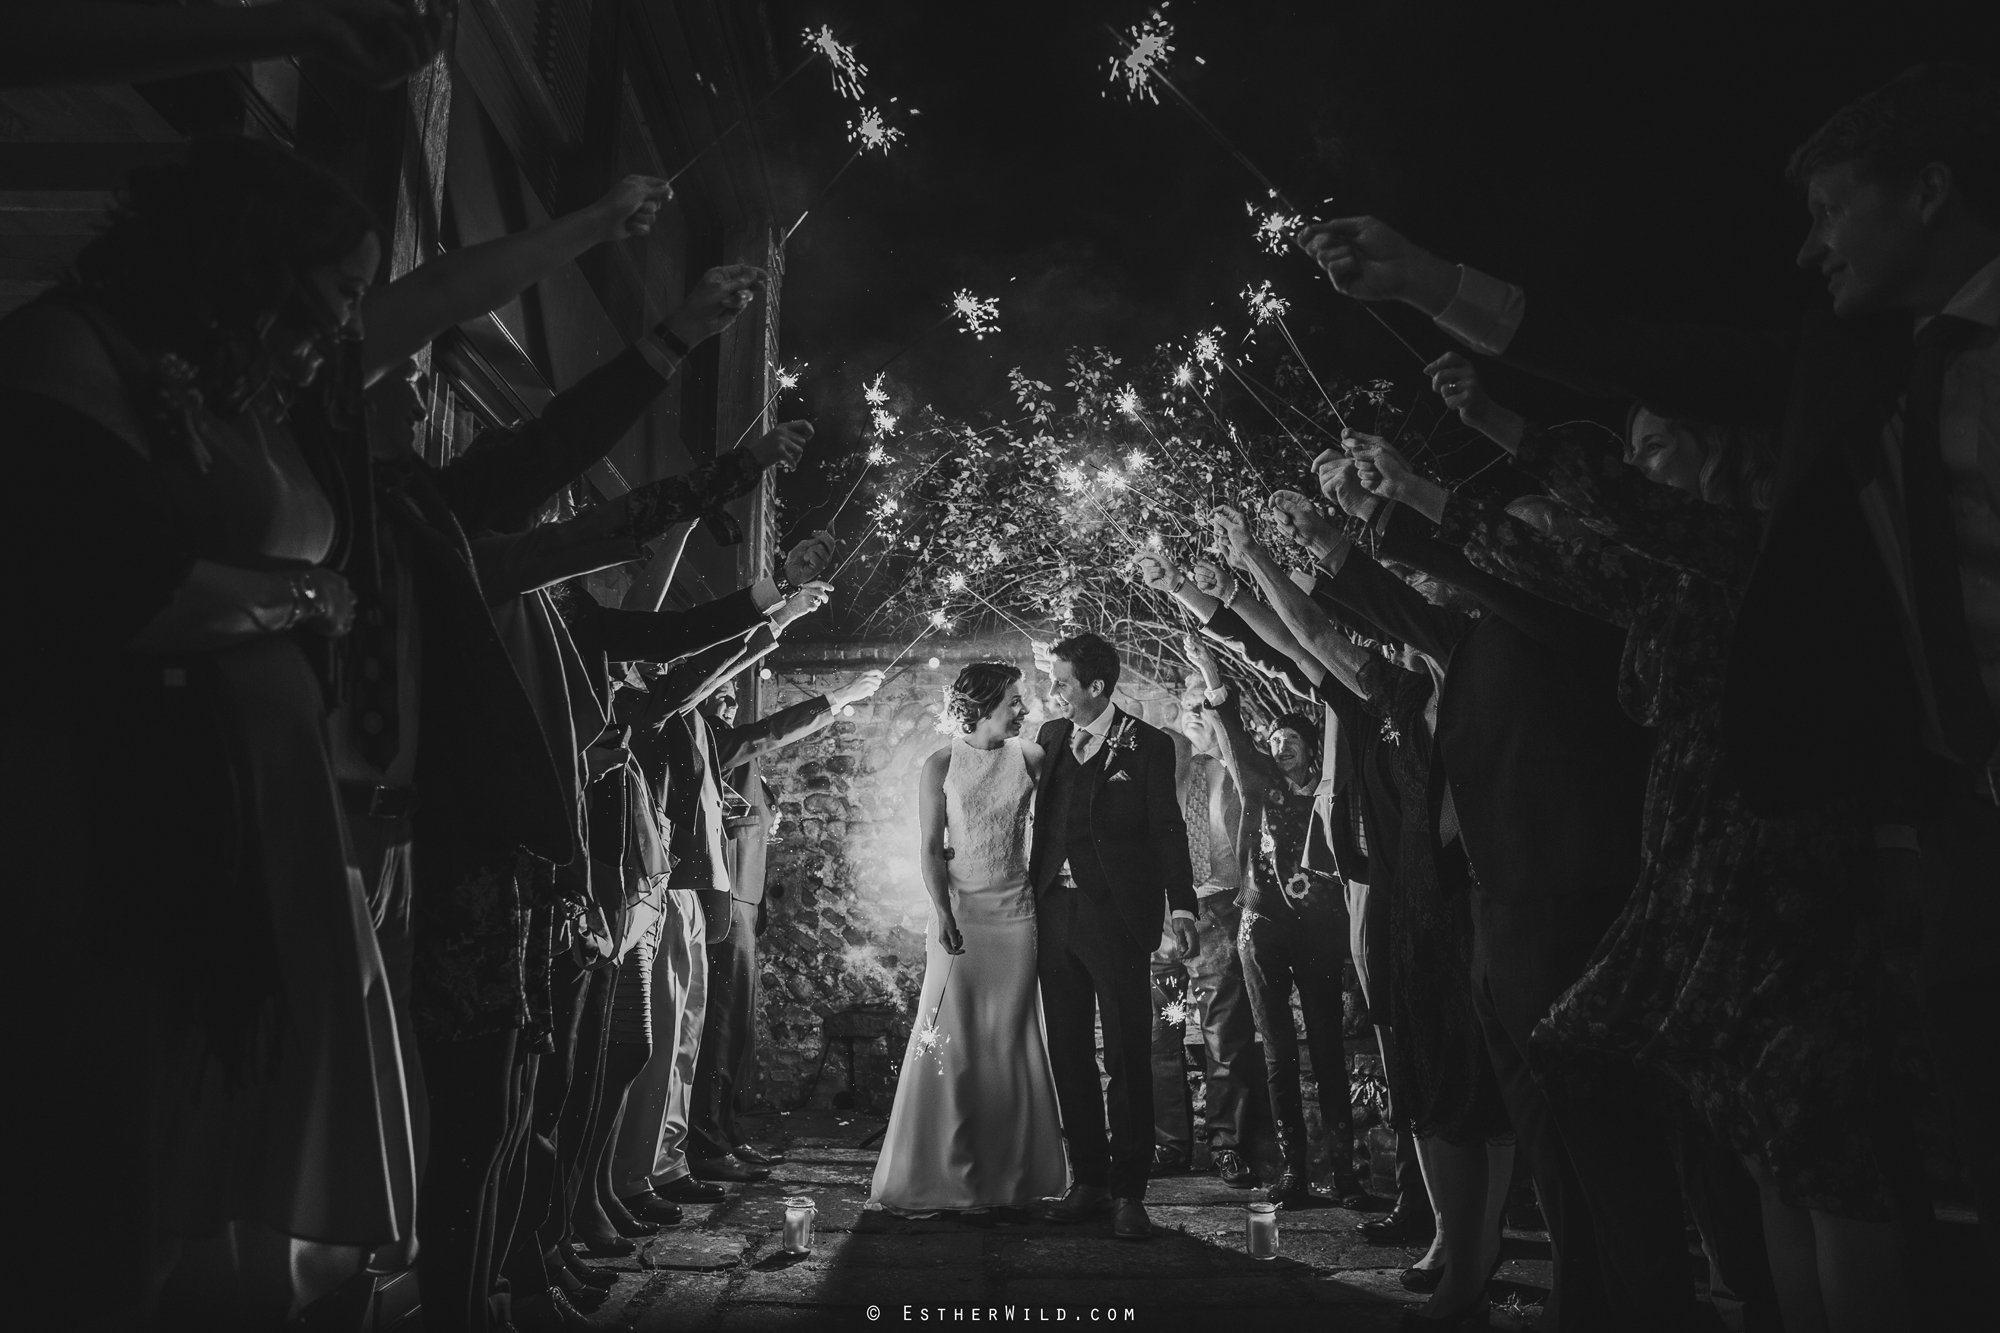 Wedding_Photographer_Chaucer_Barn_Holt_Norfolk_Country_Rustic_Venue_Copyright_Esther_Wild_IMG_2125-2.jpg